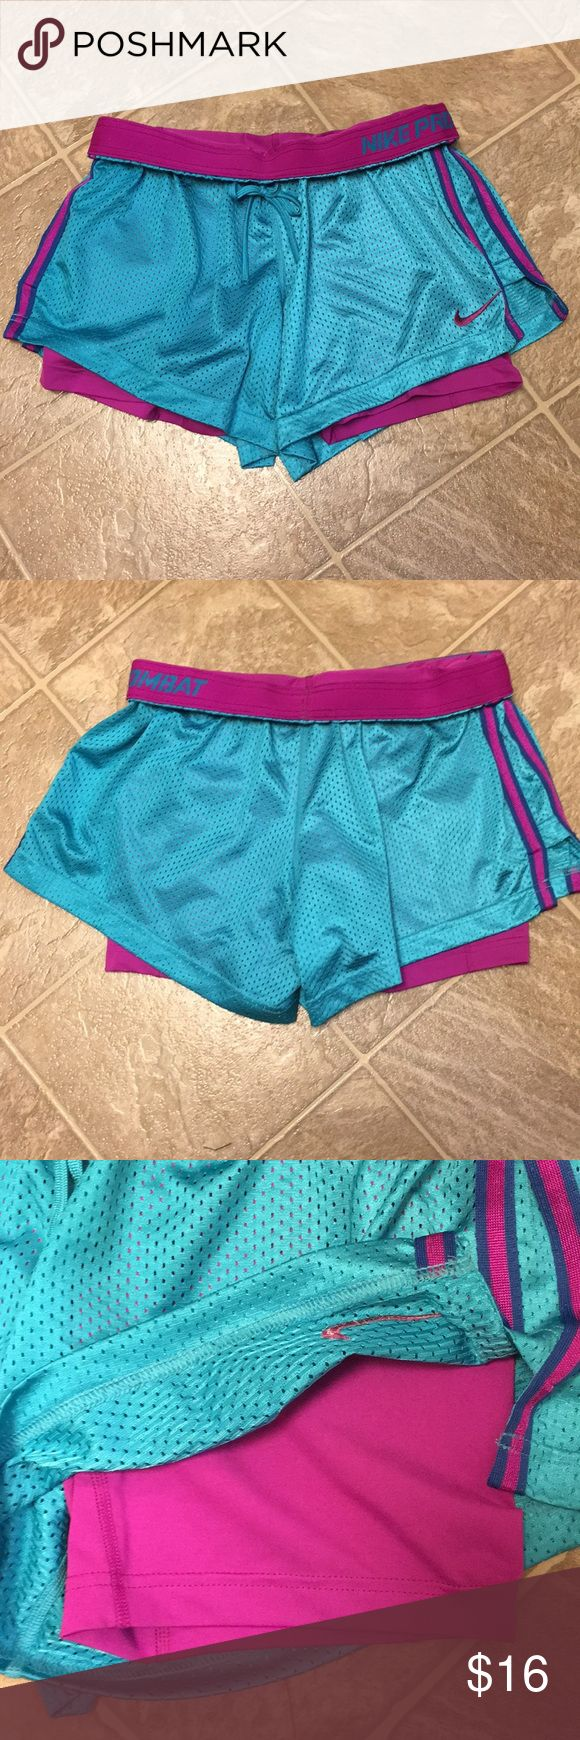 Nike Athletic Shorts Turquoise shorts with built in purple spandex short underneath. Excellent condition Nike Shorts